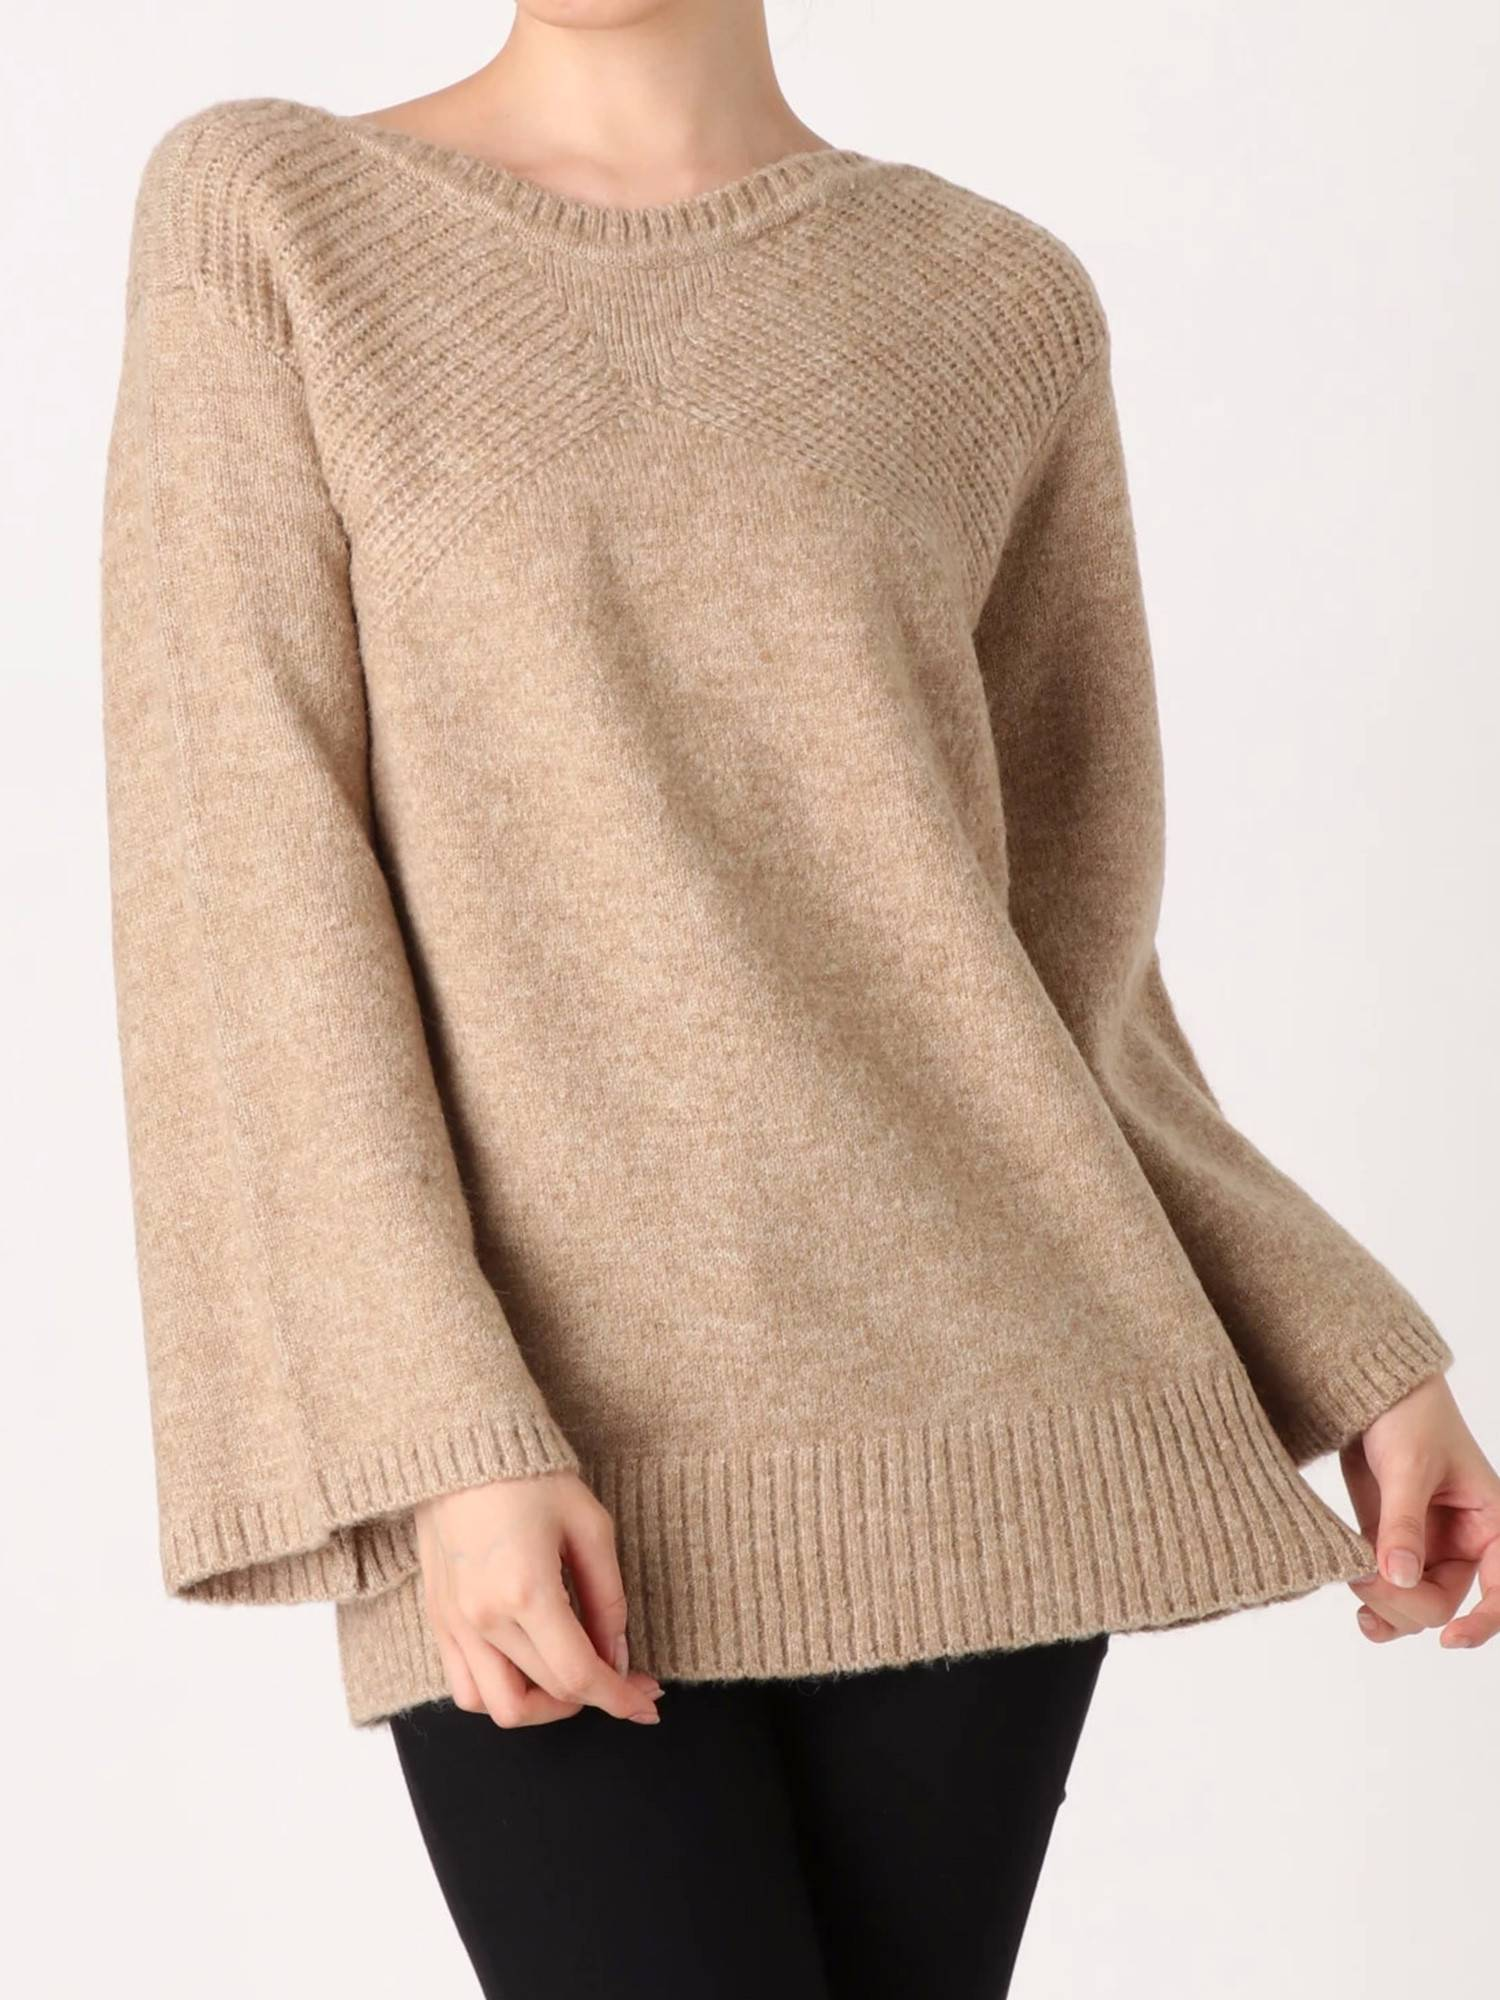 Curve neck knit